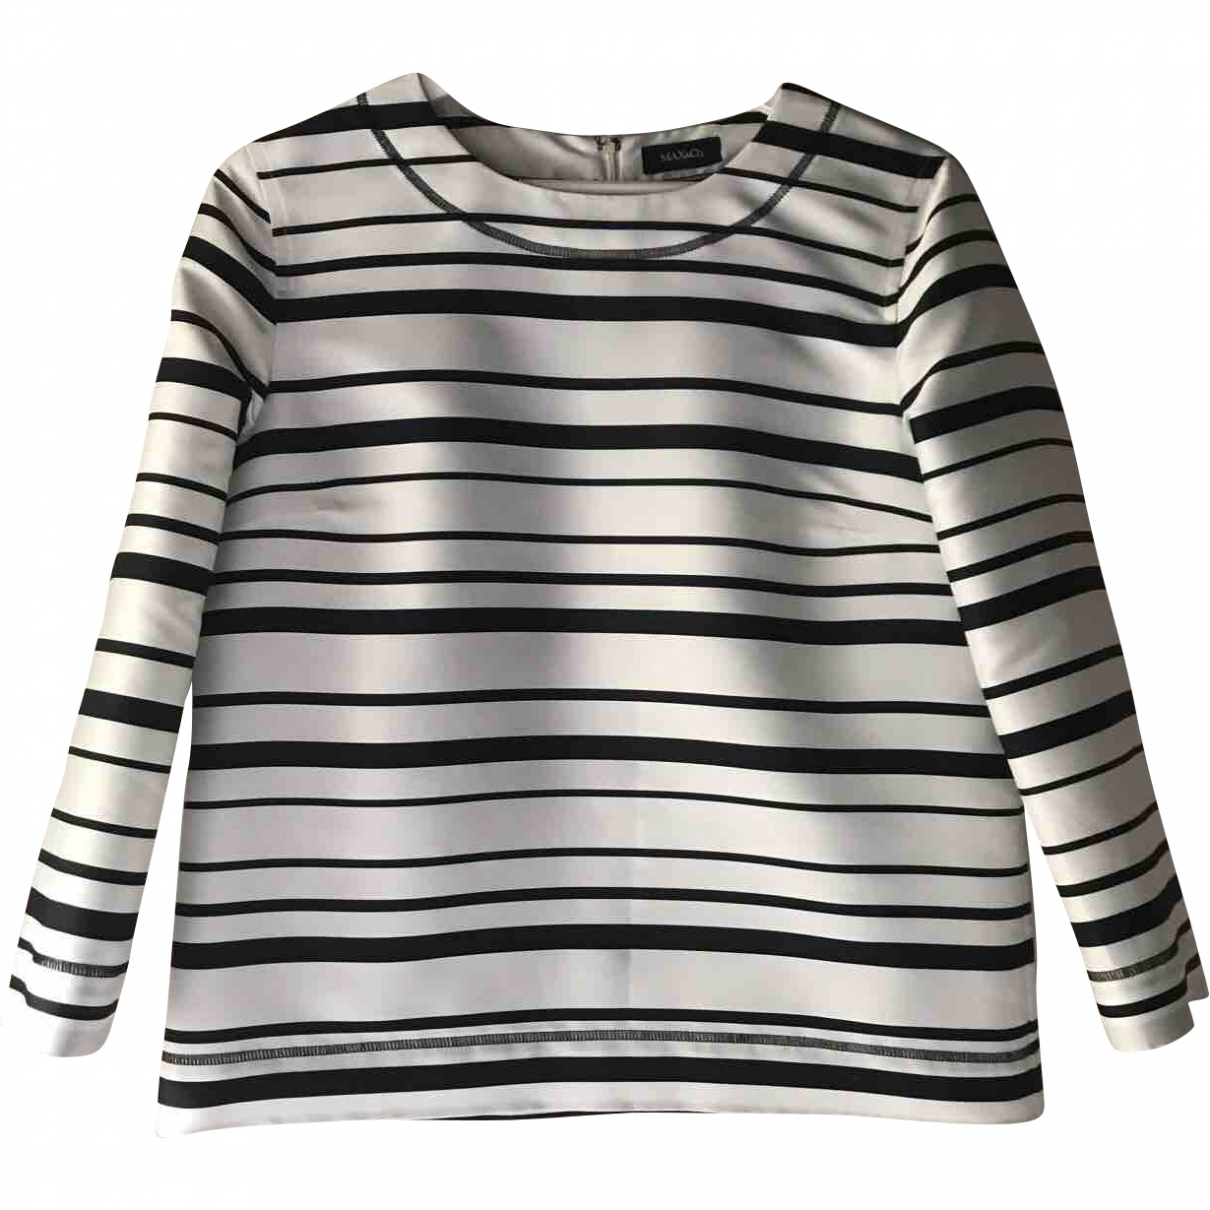 Max & Co \N White  top for Women 42 IT